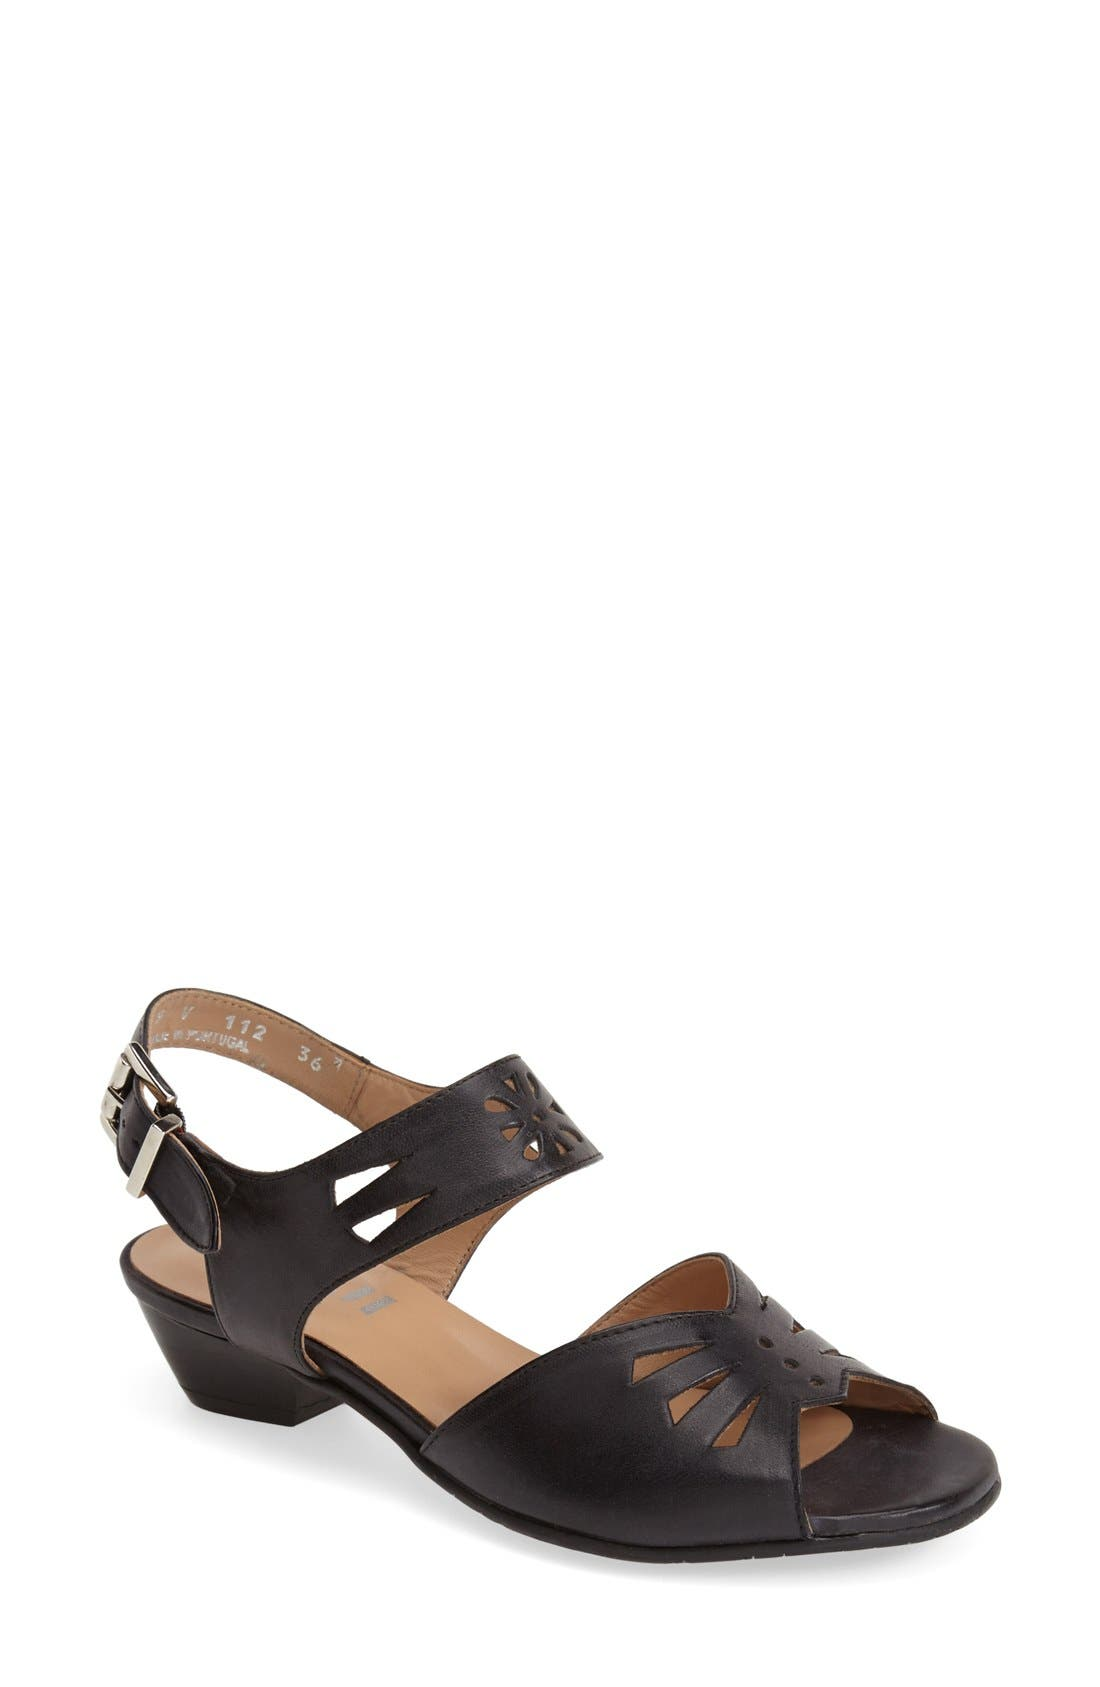 Alternate Image 1 Selected - Fidji 'V112' Perforated Leather Sandal (Women)